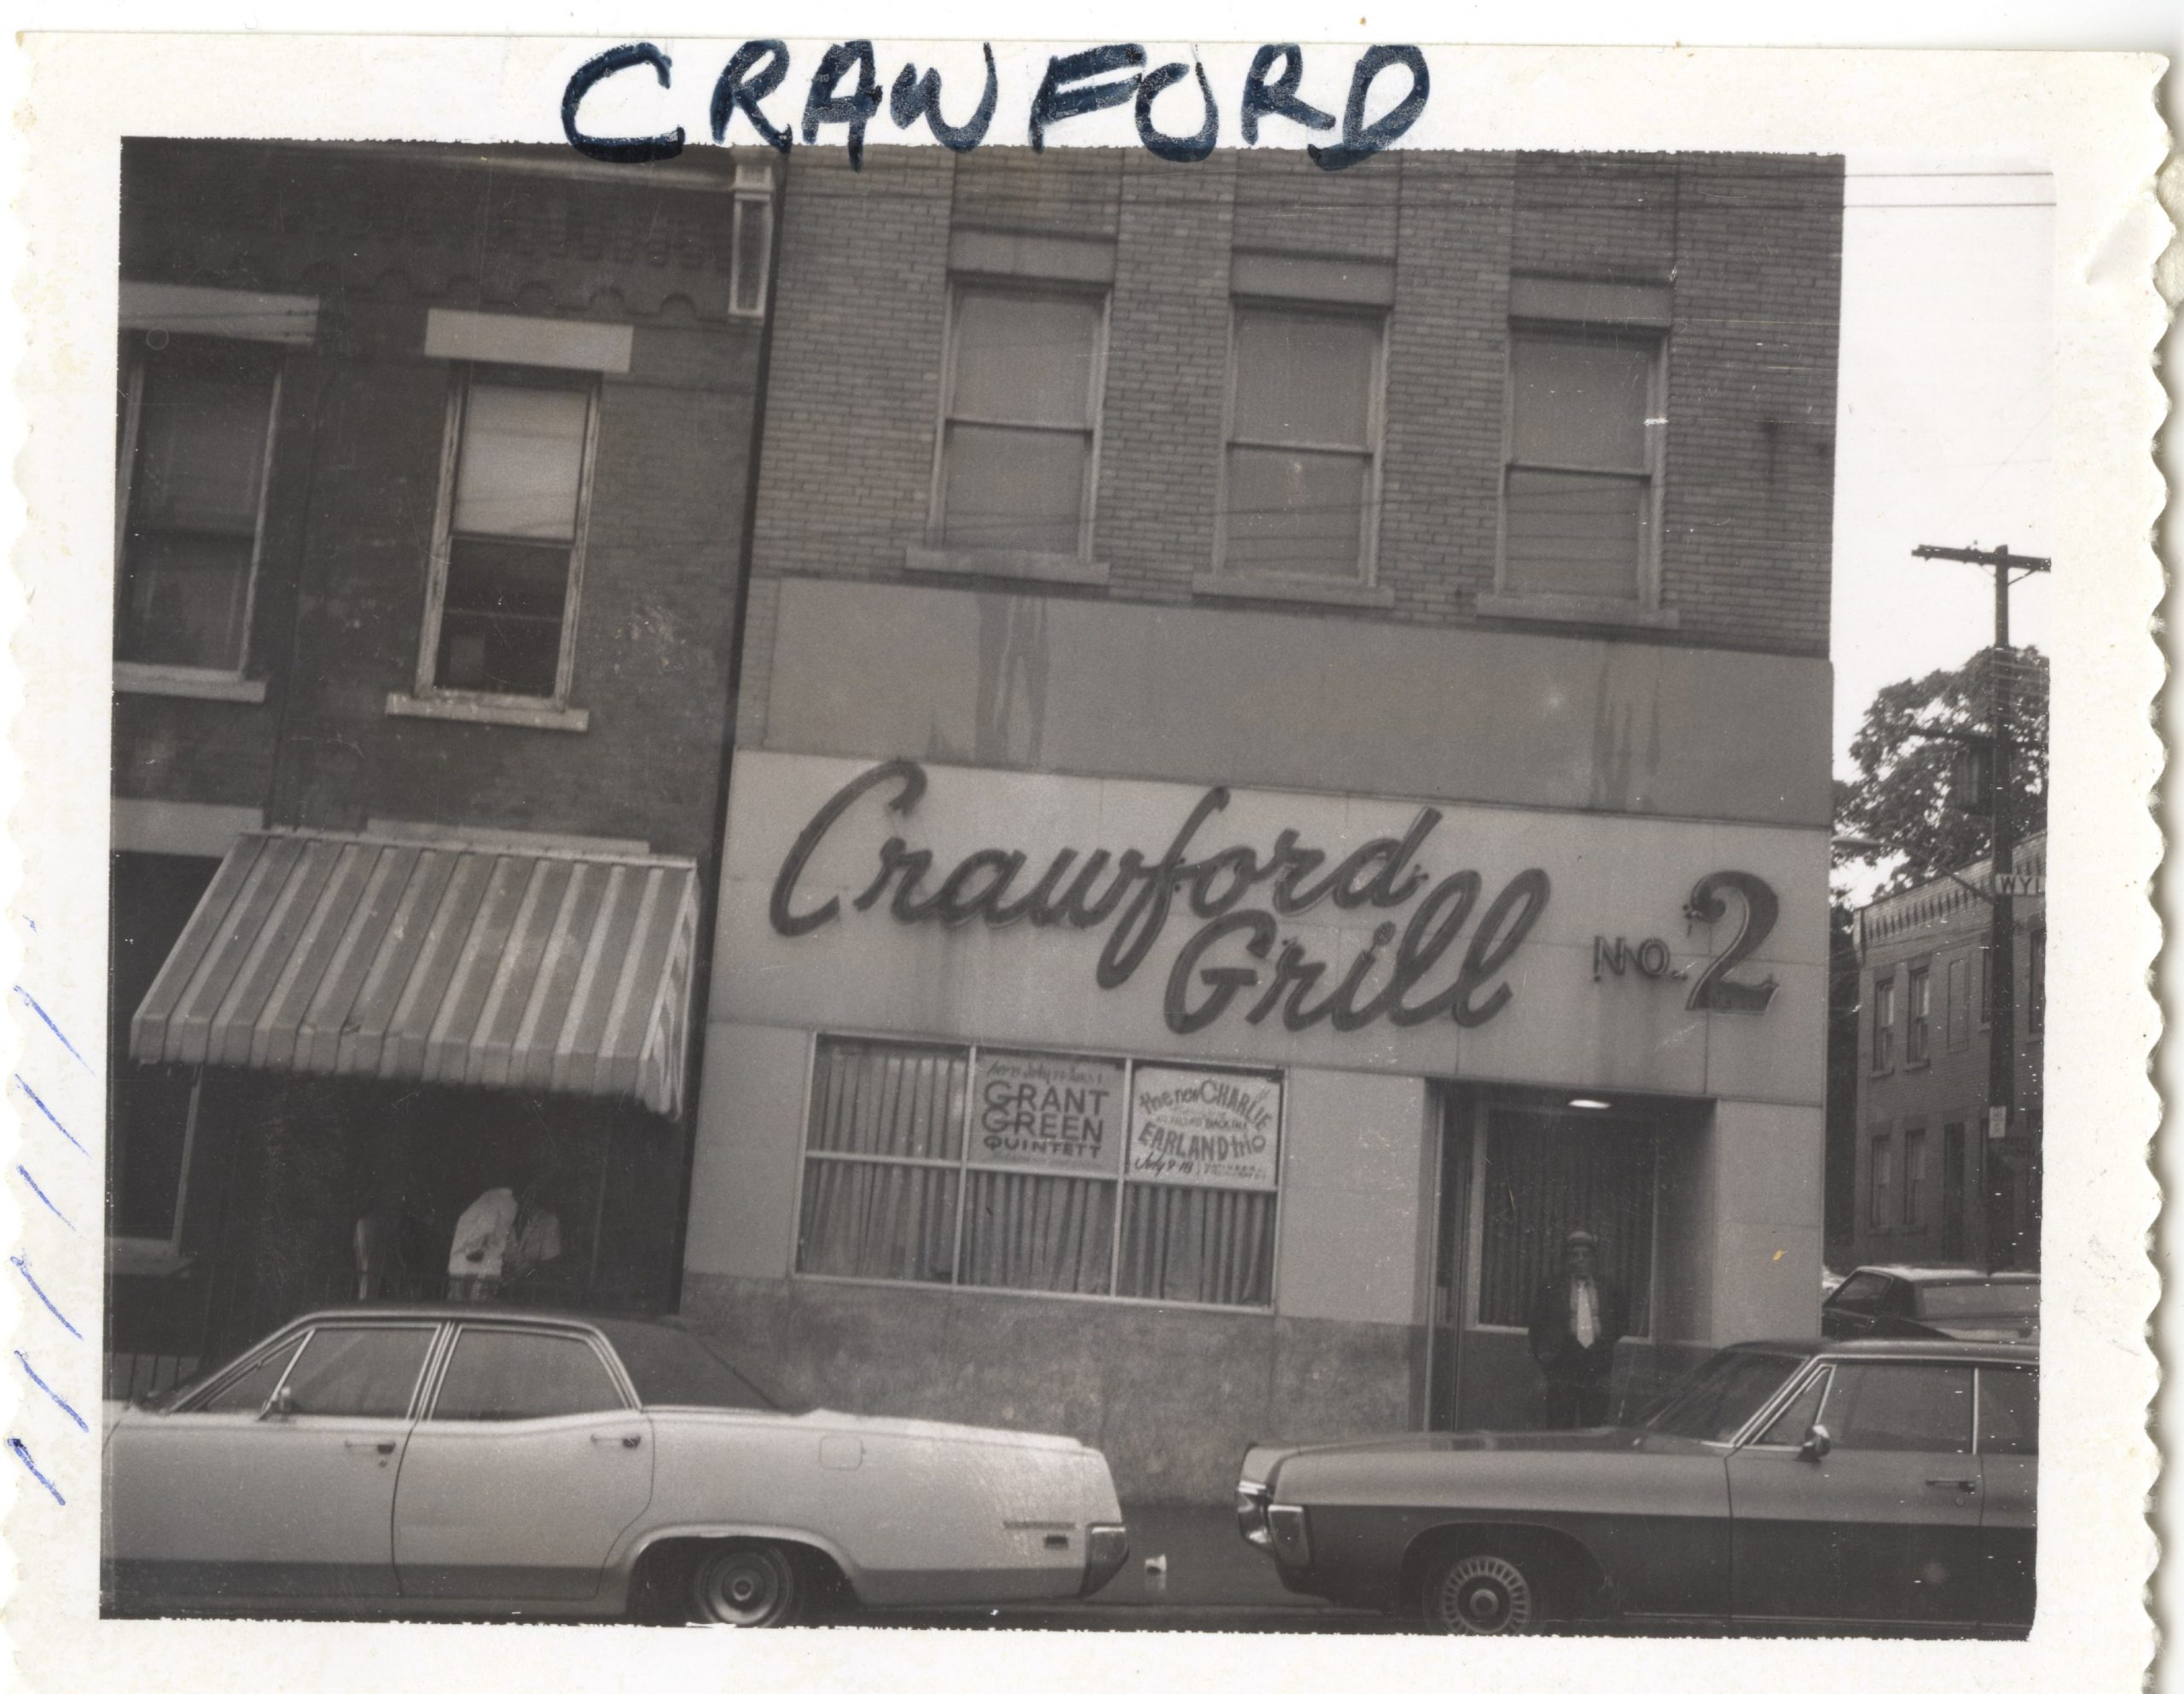 Crawford Grill #2, c. 1975. From the McBride Sign Company Photographs, Detre Library & Archives at the History Center.